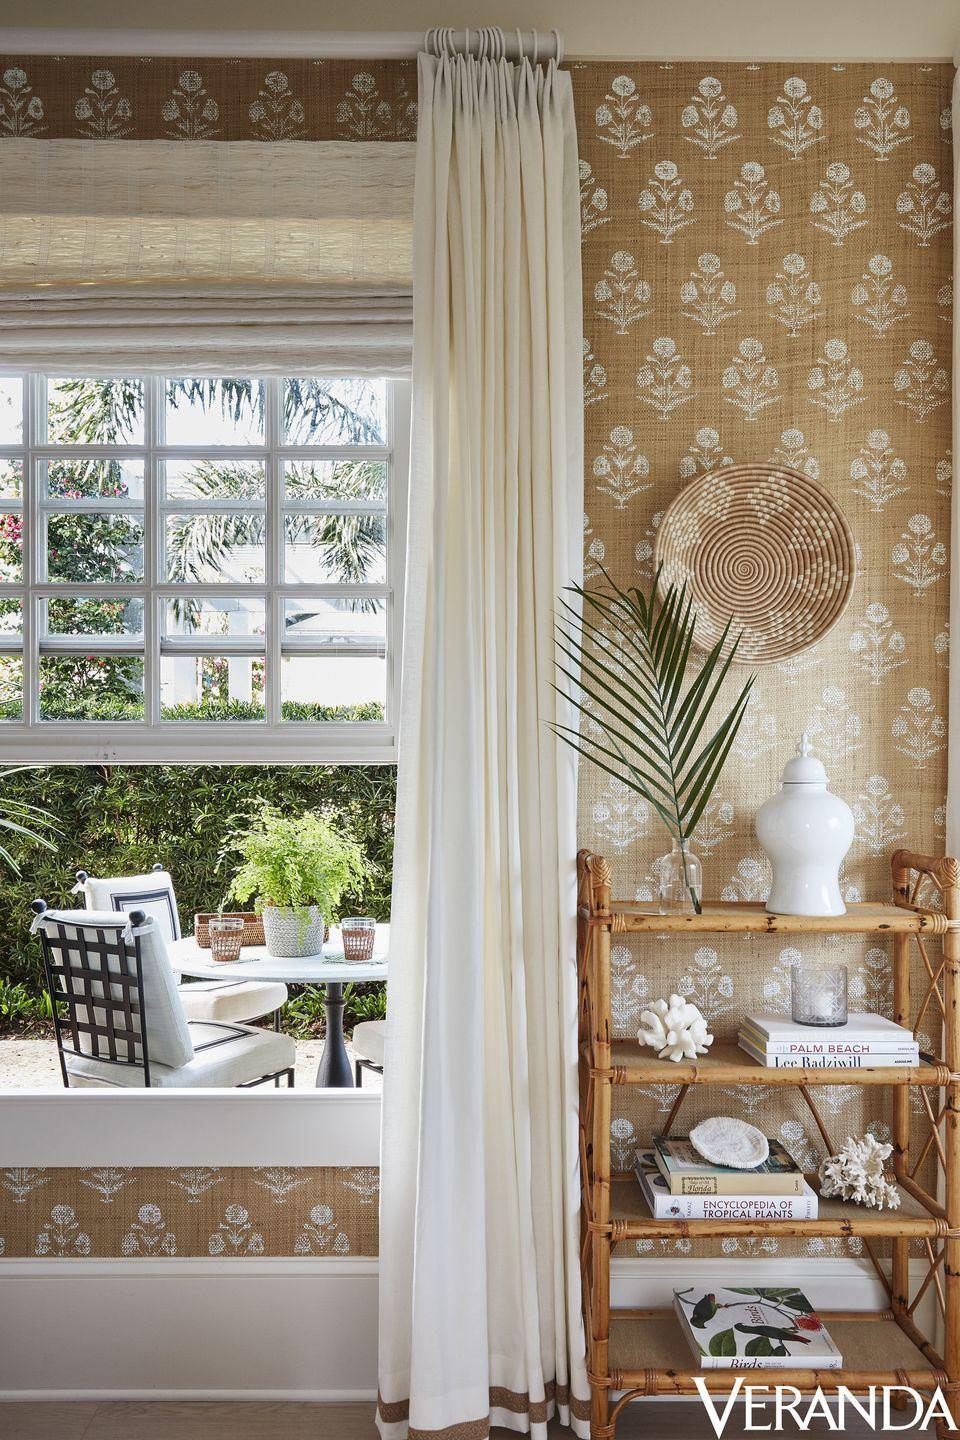 """<p>This breezy, beautiful vignette can be found in a <a href=""""https://www.veranda.com/decorating-ideas/a19833976/alessandra-branca-windsor-florida-village-suites/"""" rel=""""nofollow noopener"""" target=""""_blank"""" data-ylk=""""slk:Windsor, Florida home"""" class=""""link rapid-noclick-resp"""">Windsor, Florida home</a> designed by Alessandra Branca. The designer used a stunning grasscloth wallpaper from her own line to bring texture and a global-meets-coastal feel to the space. </p>"""